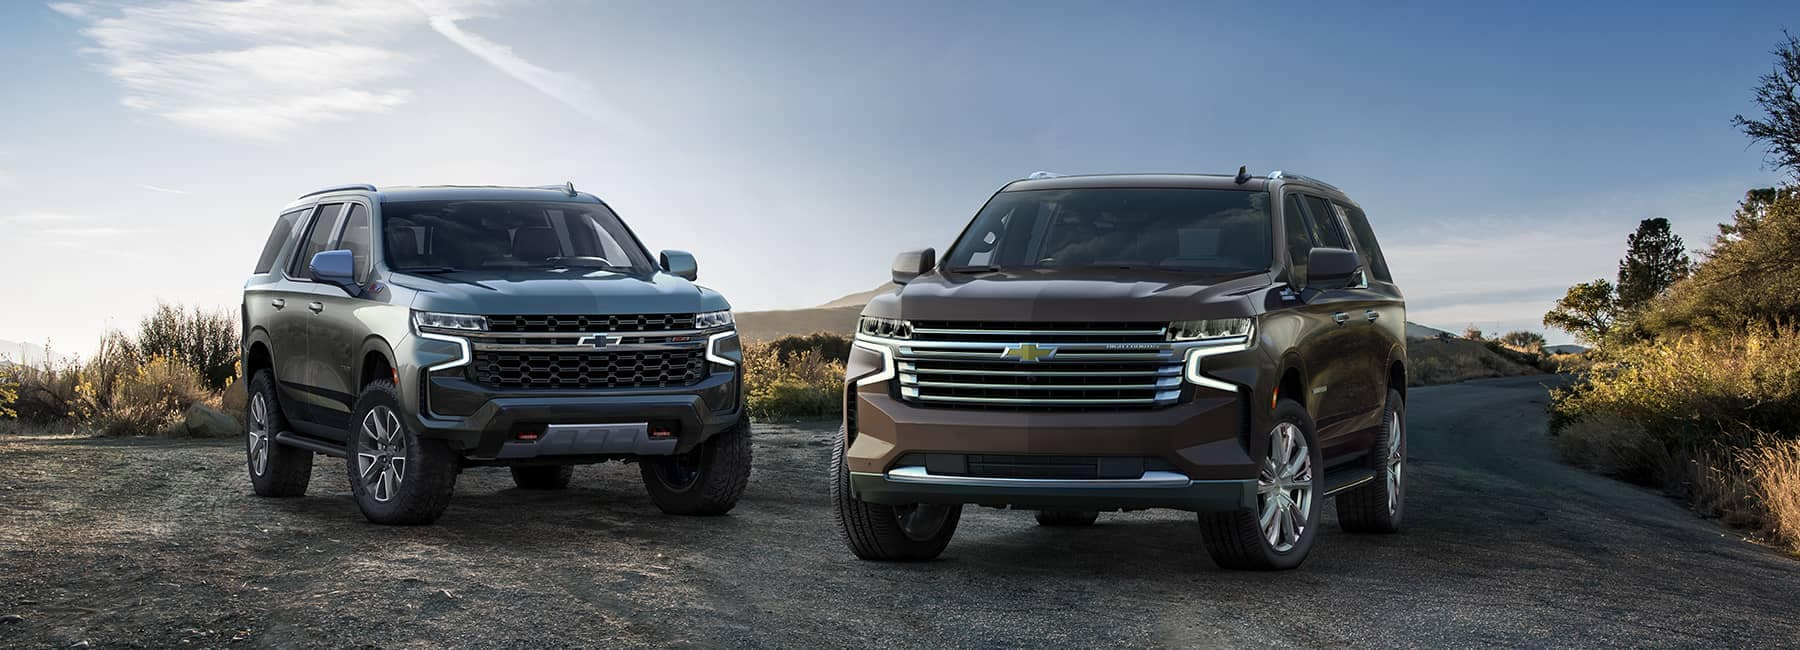 2021 Chevrolet Suburbans parked side-by-side